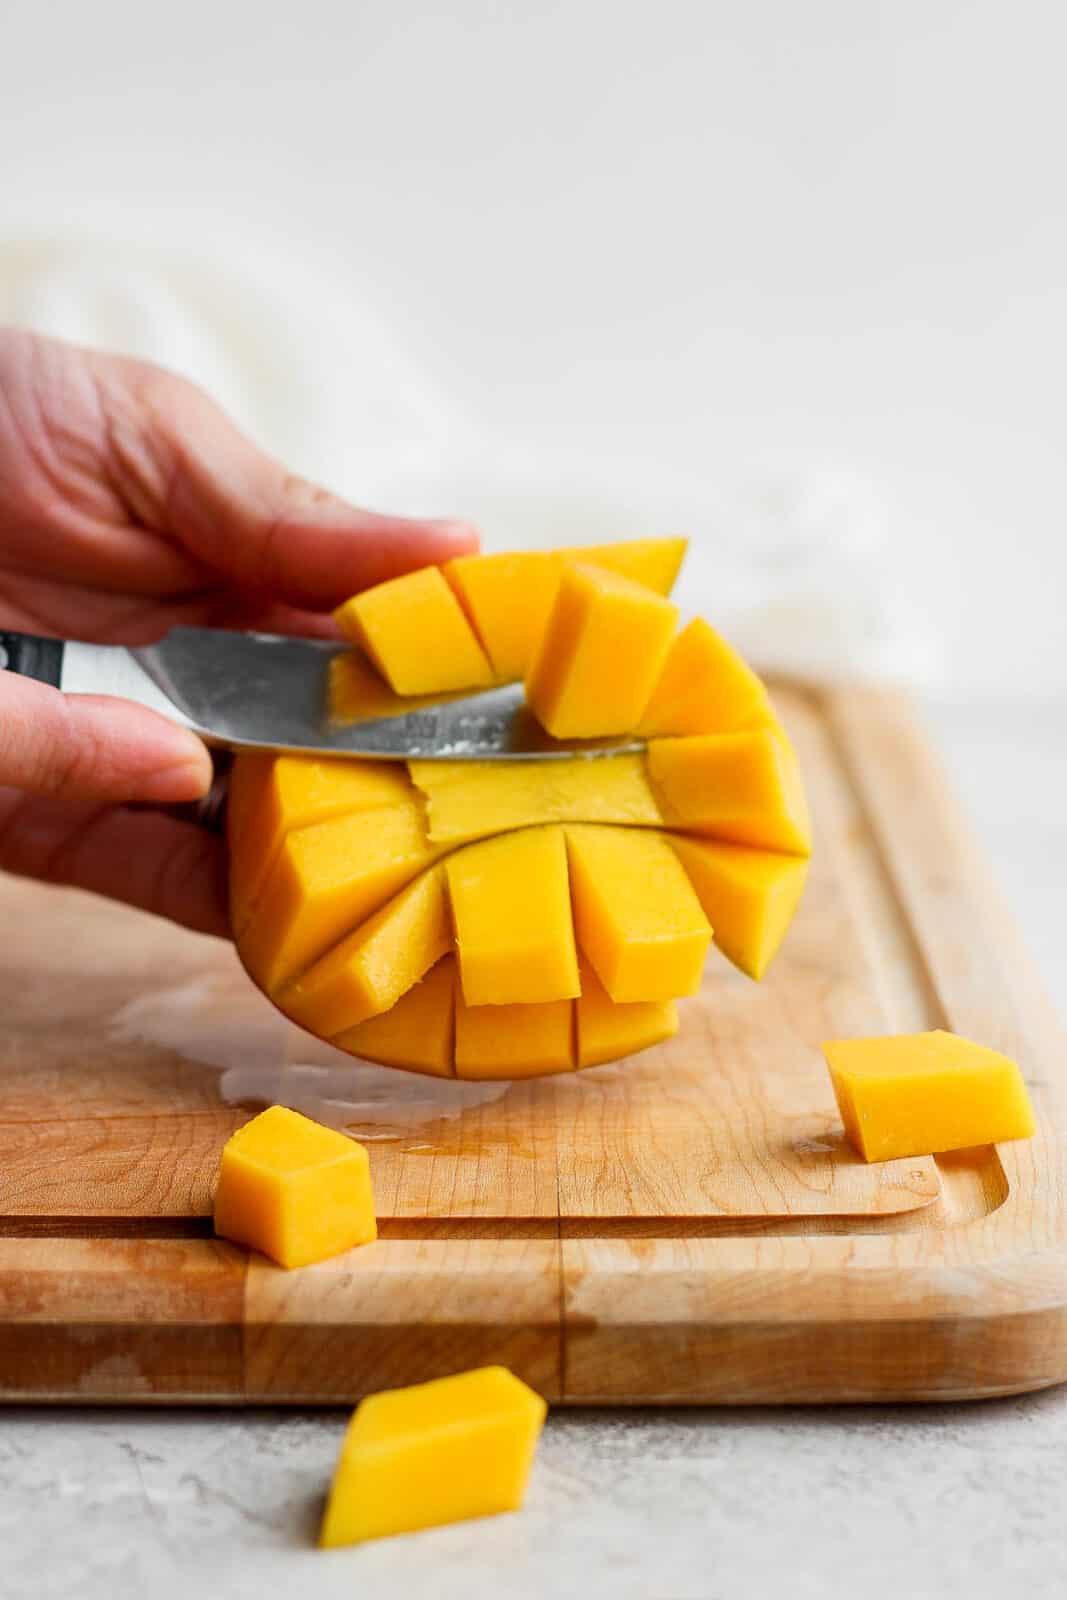 The cubes of mango being sliced from the skin.